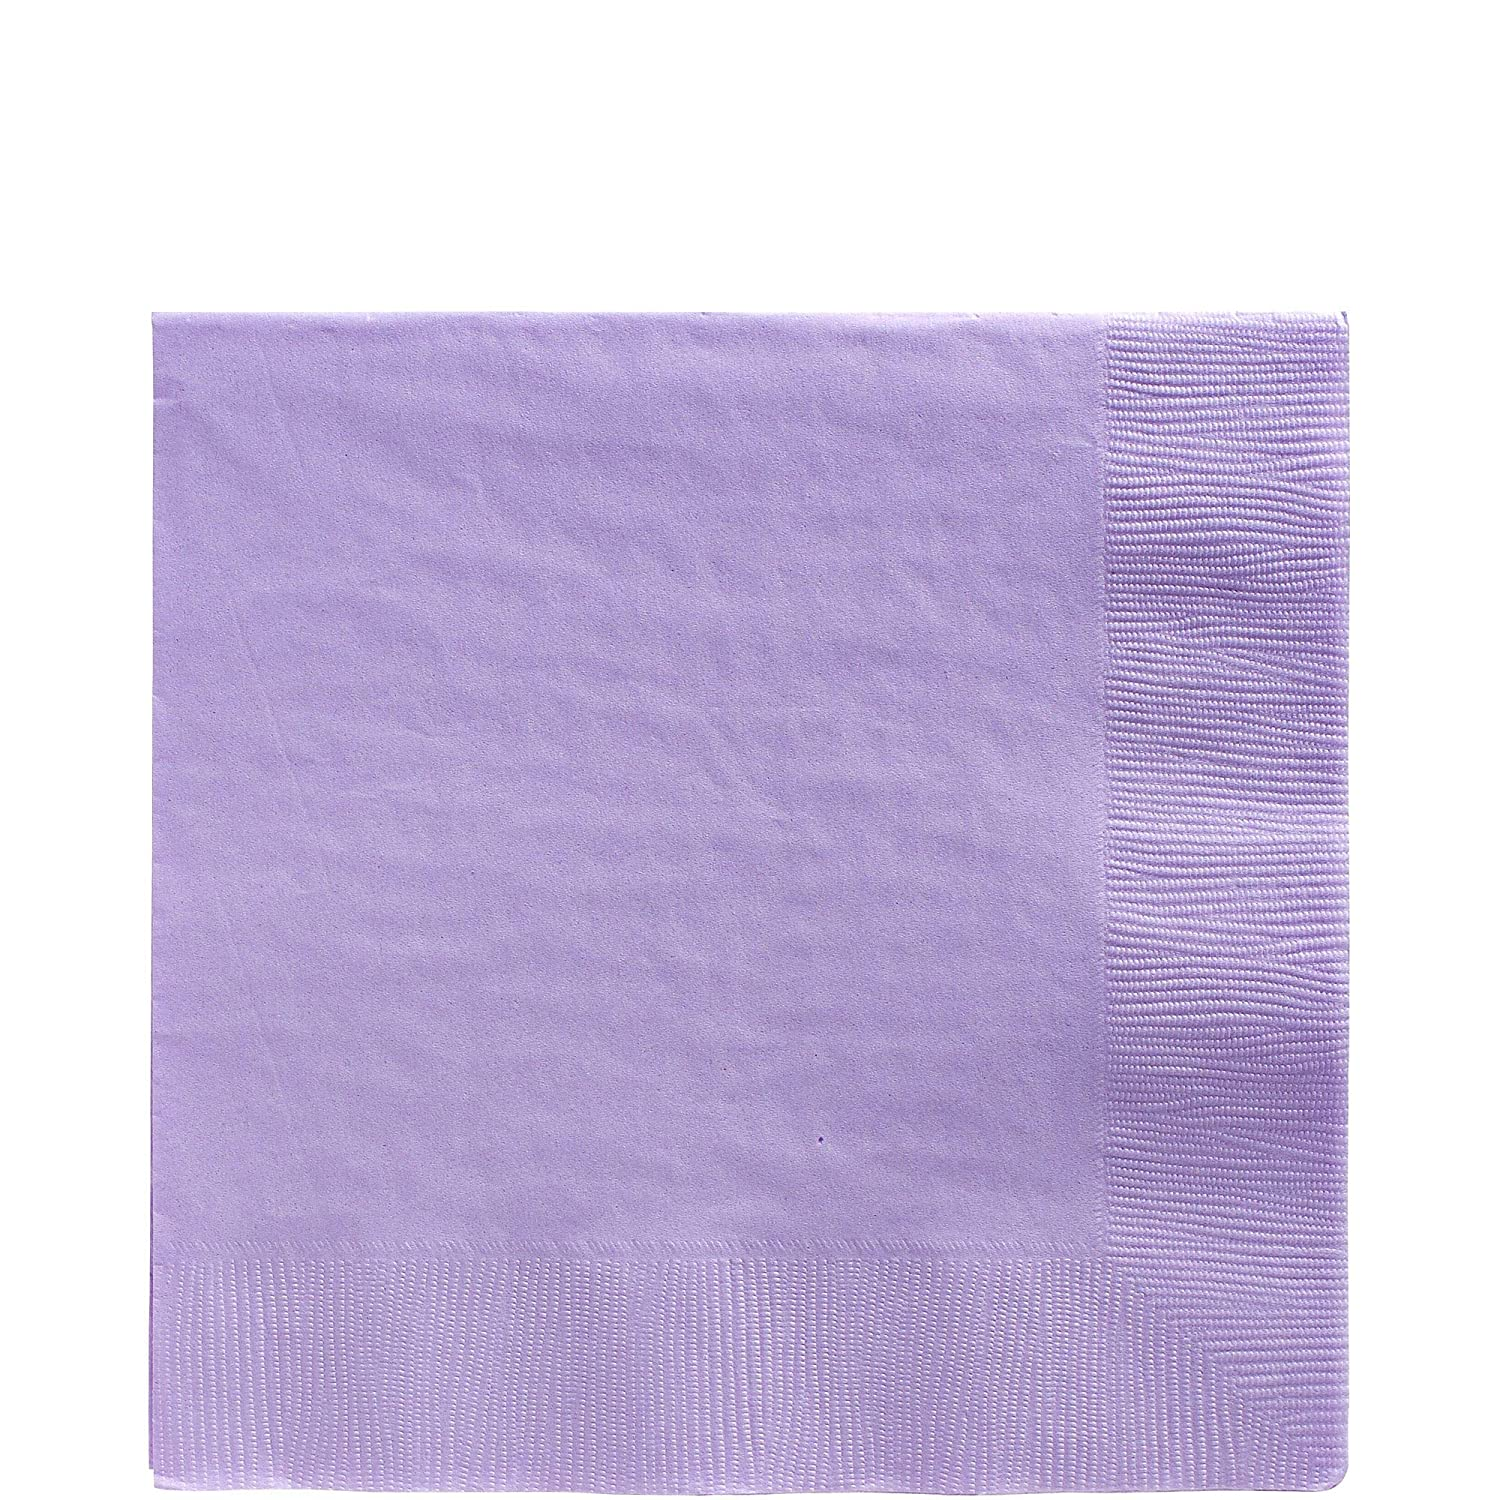 B004UPYMY6 Lavender Big Party Pack Luncheon Napkins | Pack of 125 | Party Supply 91pN1xuTA0L